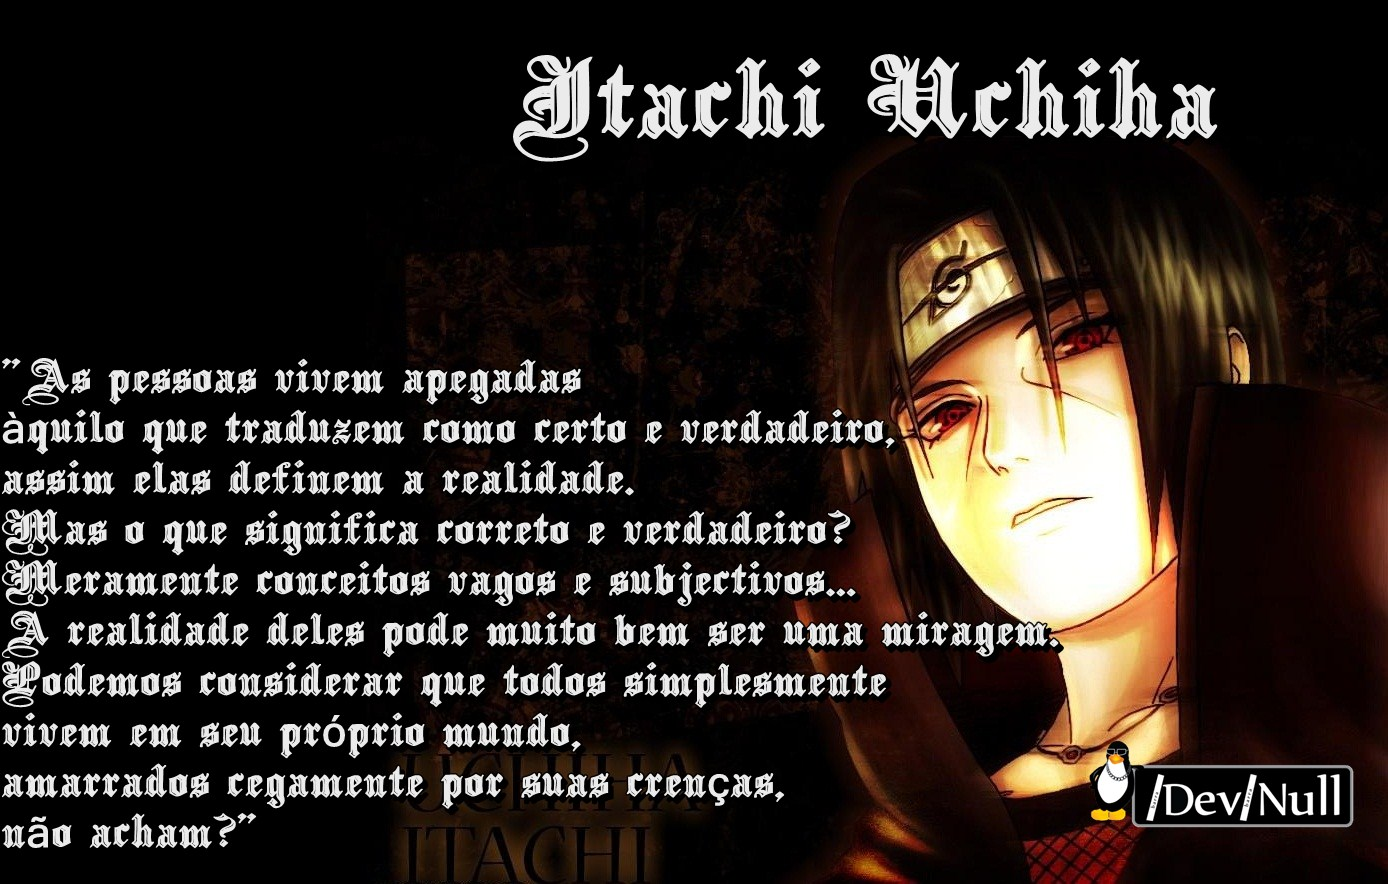 Itachi Uchiha Quotes Wallpaper Chidorii Frases De Animes